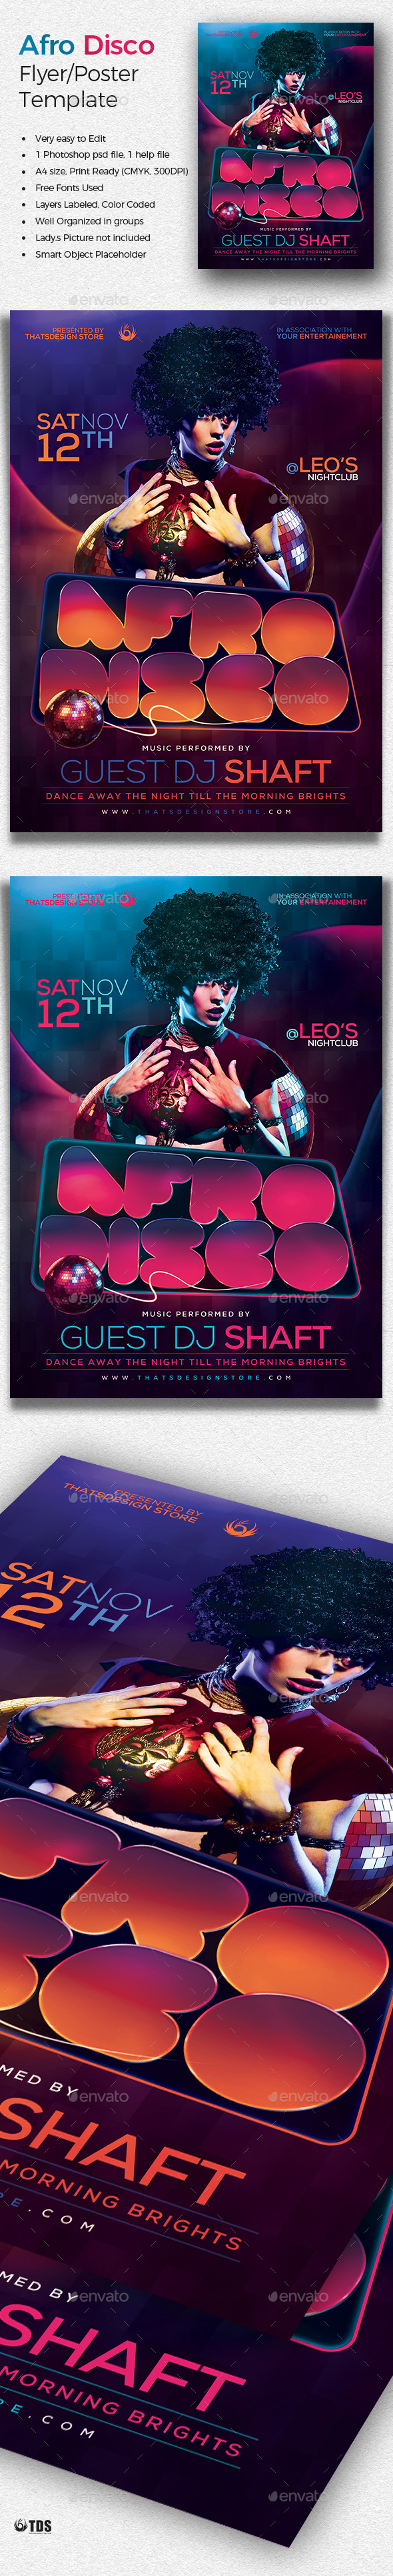 Afro Disco Flyer Template  Flyer Template Discos And Template